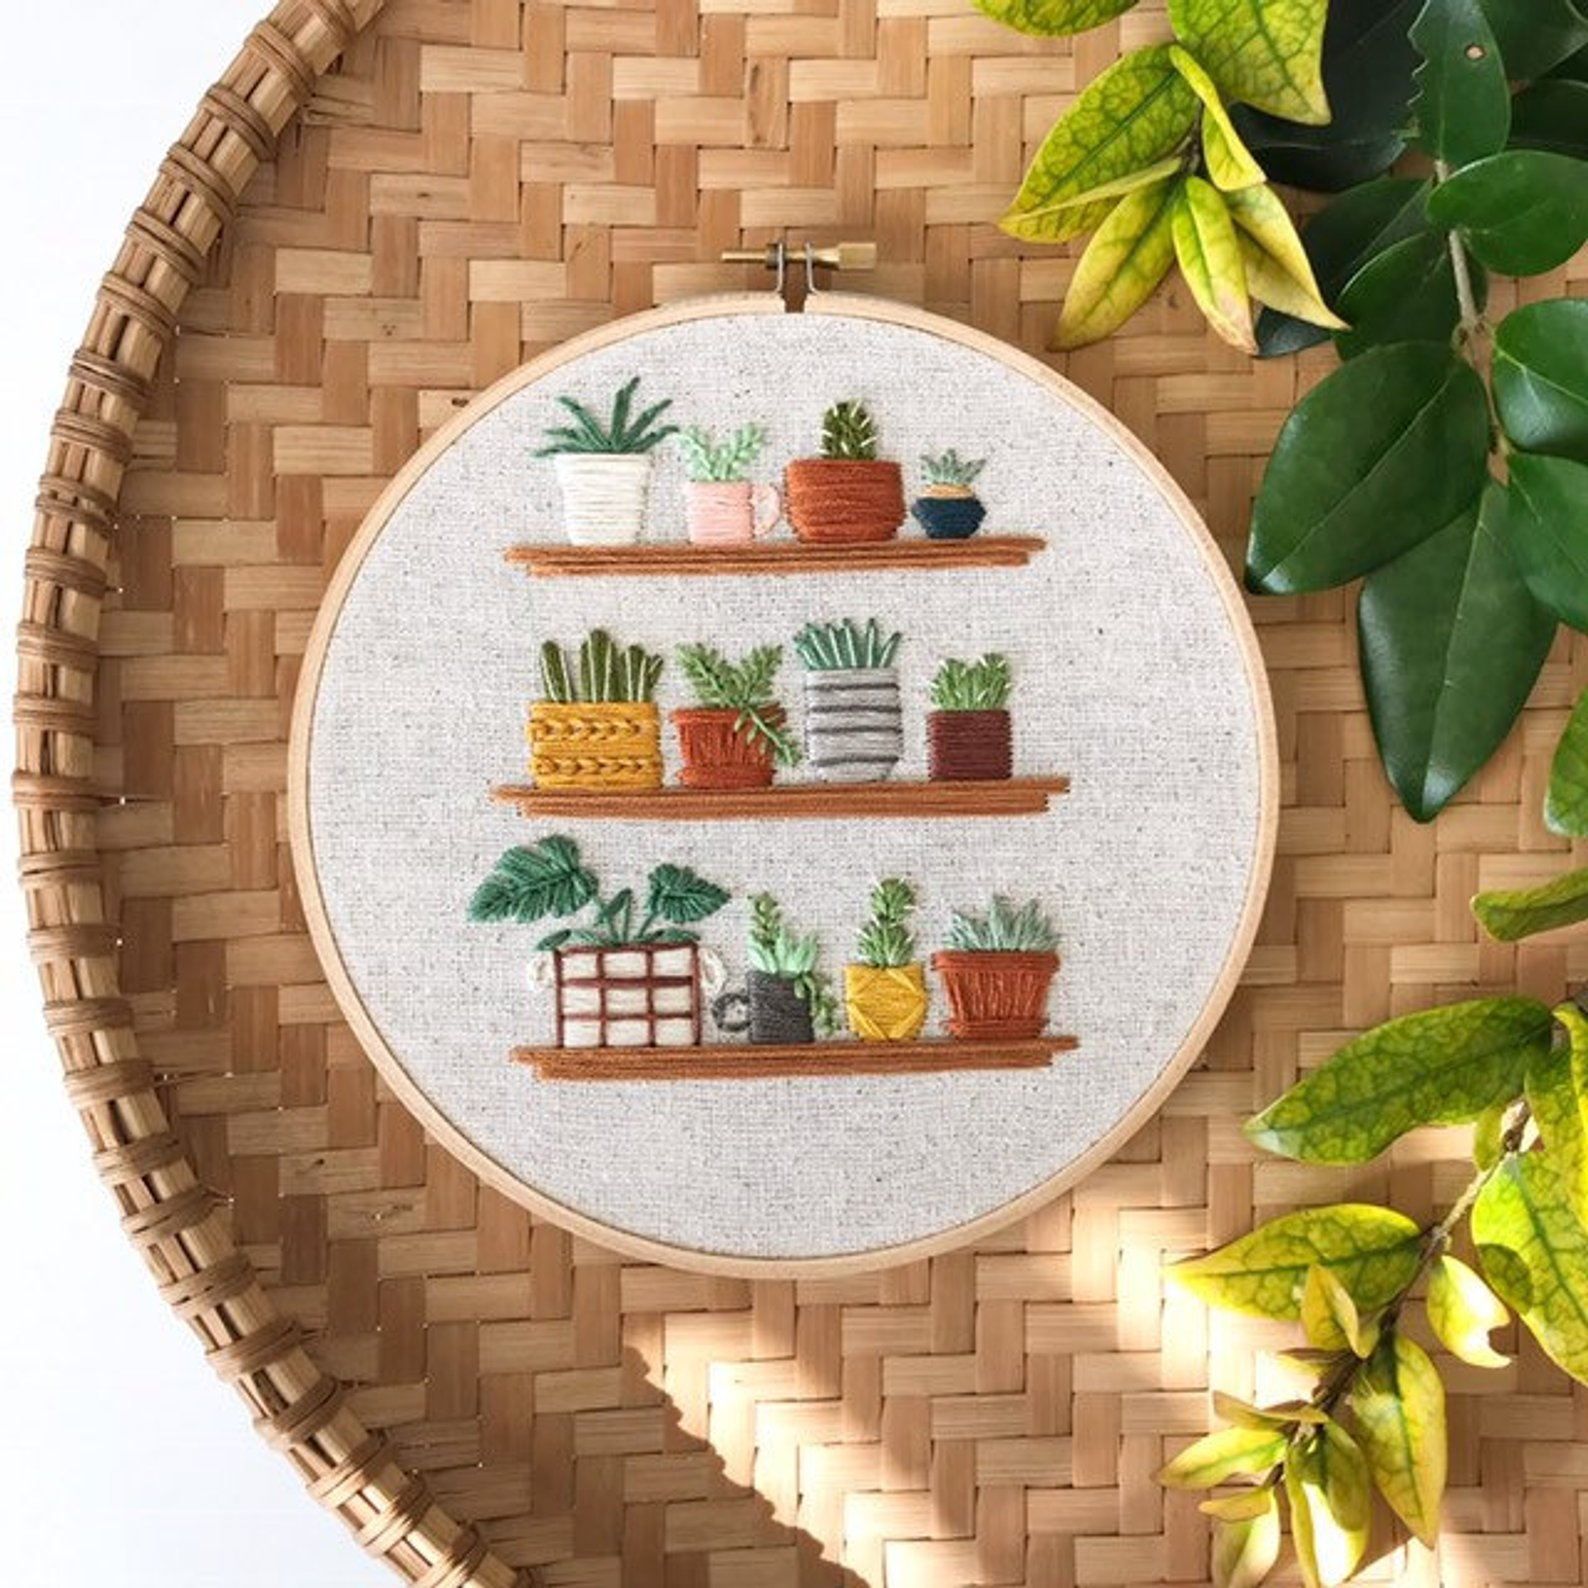 Tiny Houseplants on Shelves Embroidered Hoop By Lemon Made Shop